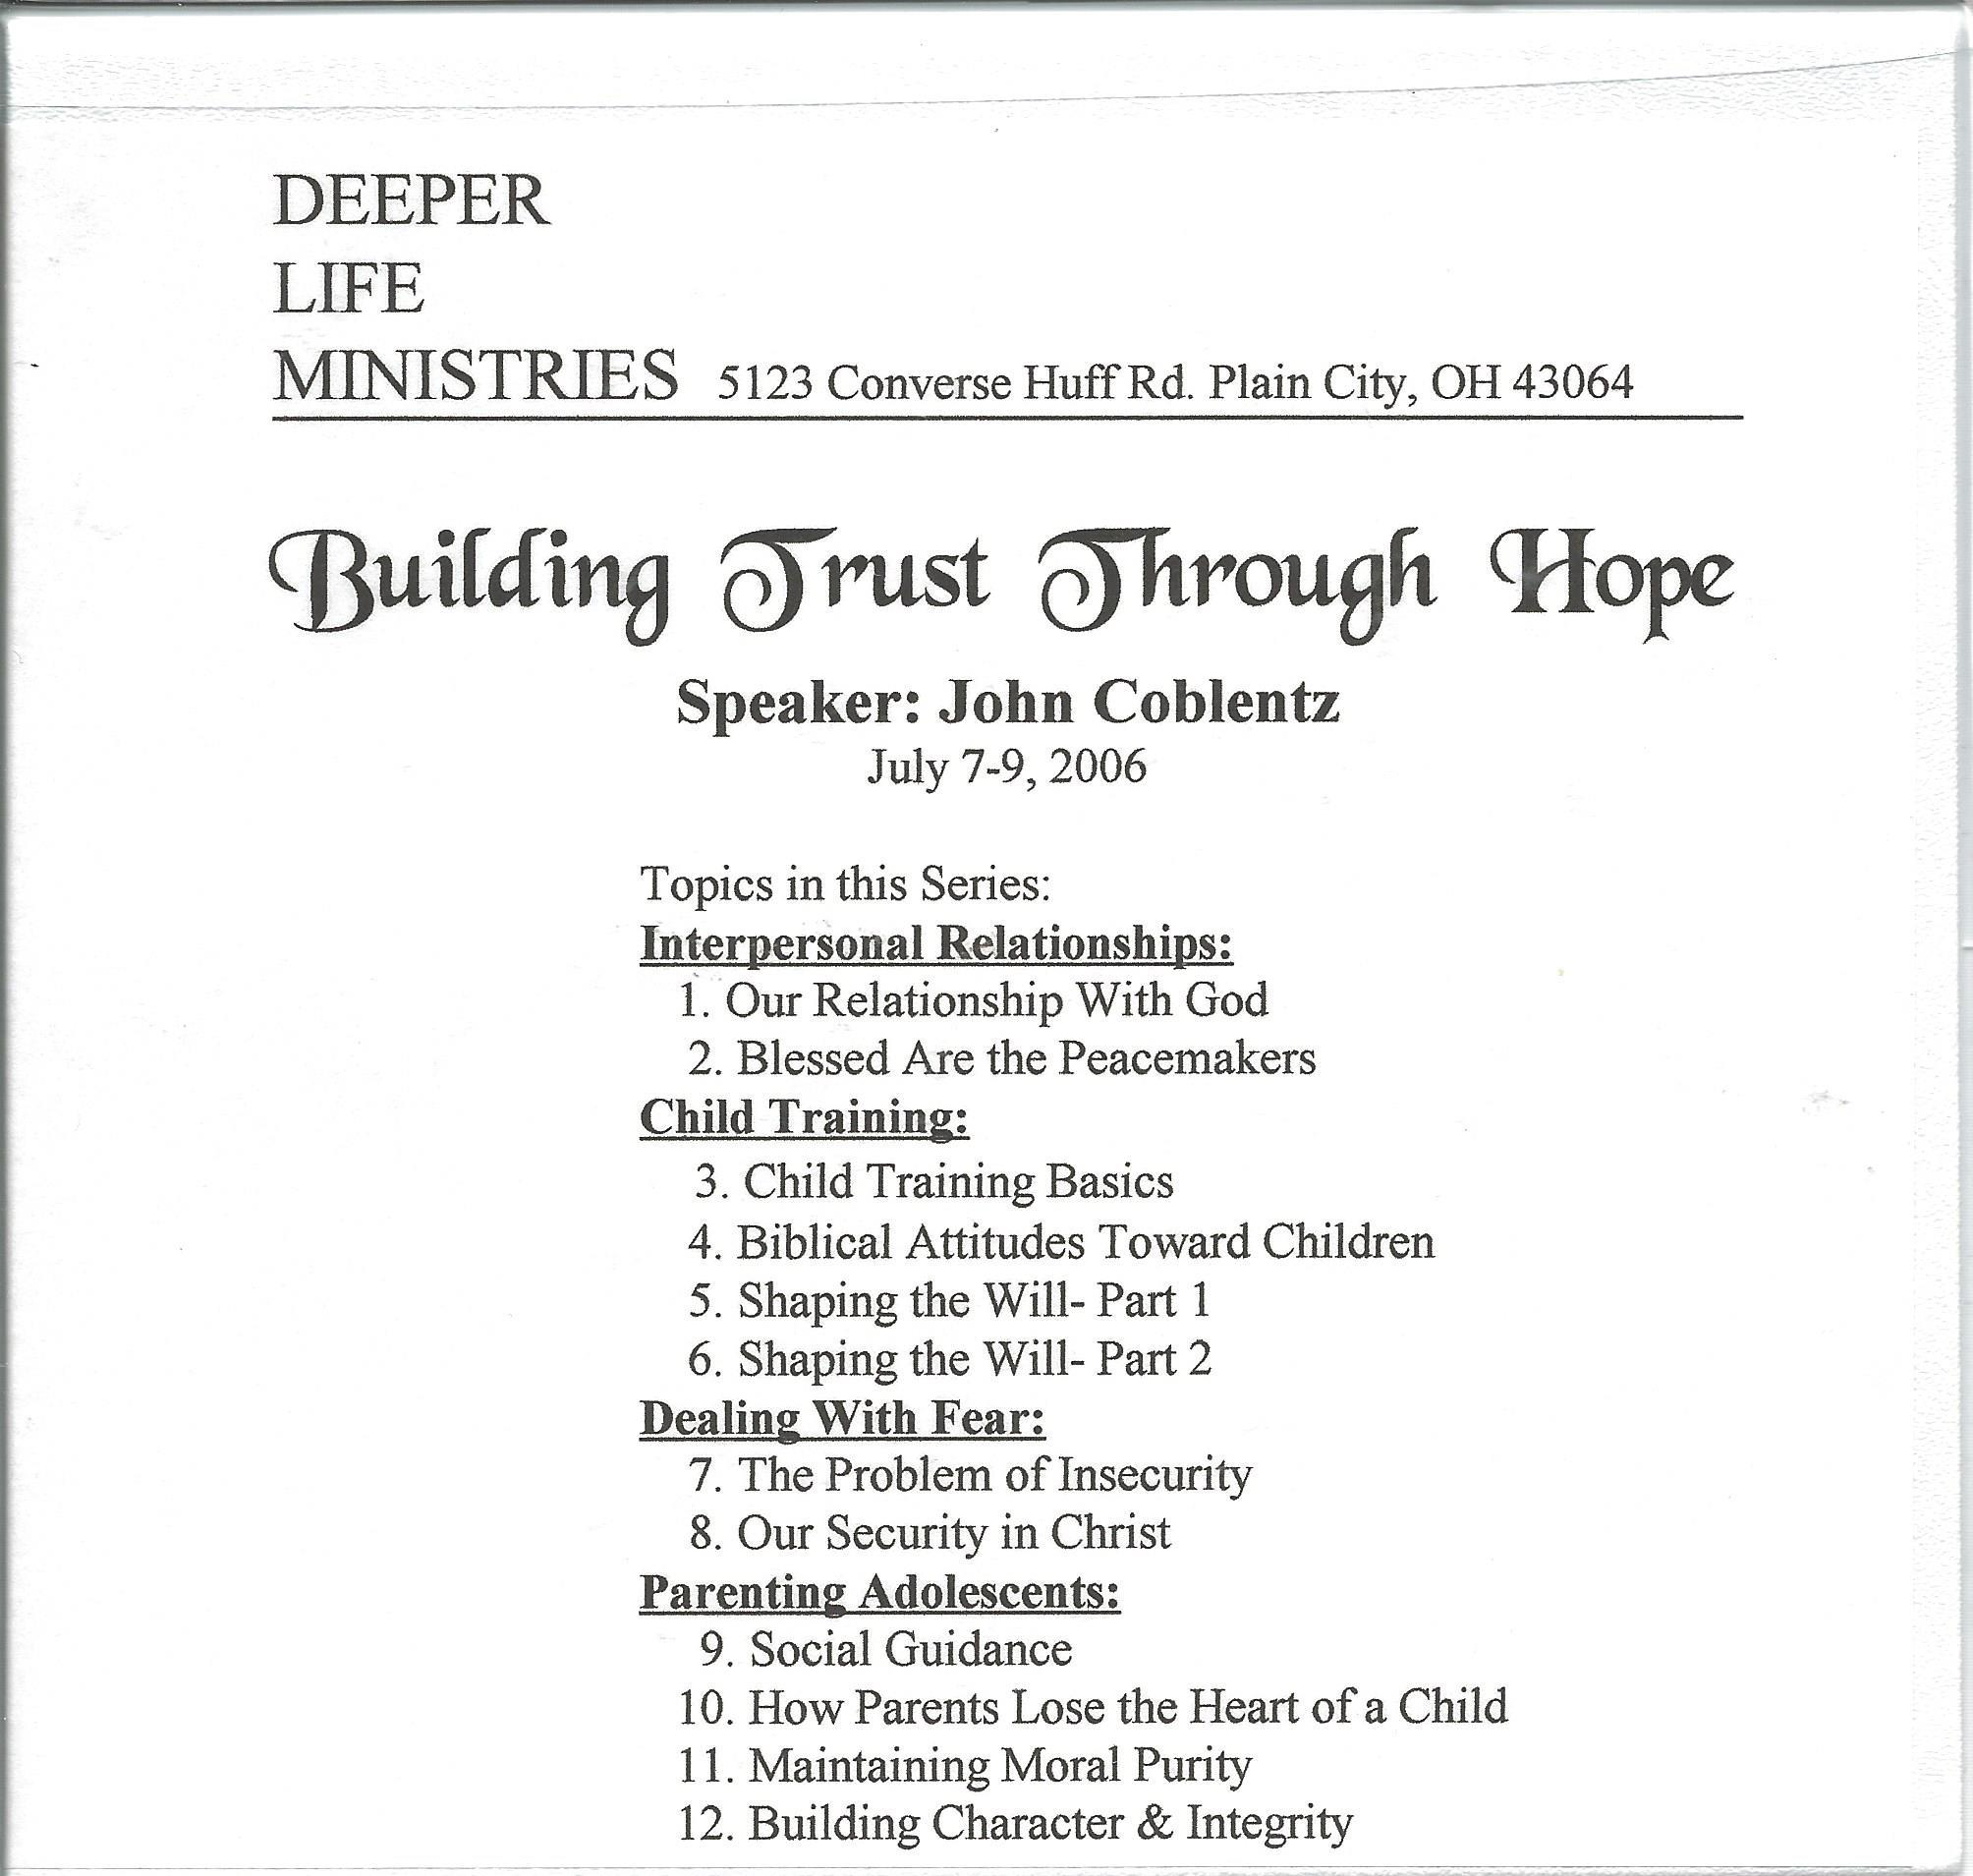 BUILDING TRUST THROUGH HOPE John Coblentz